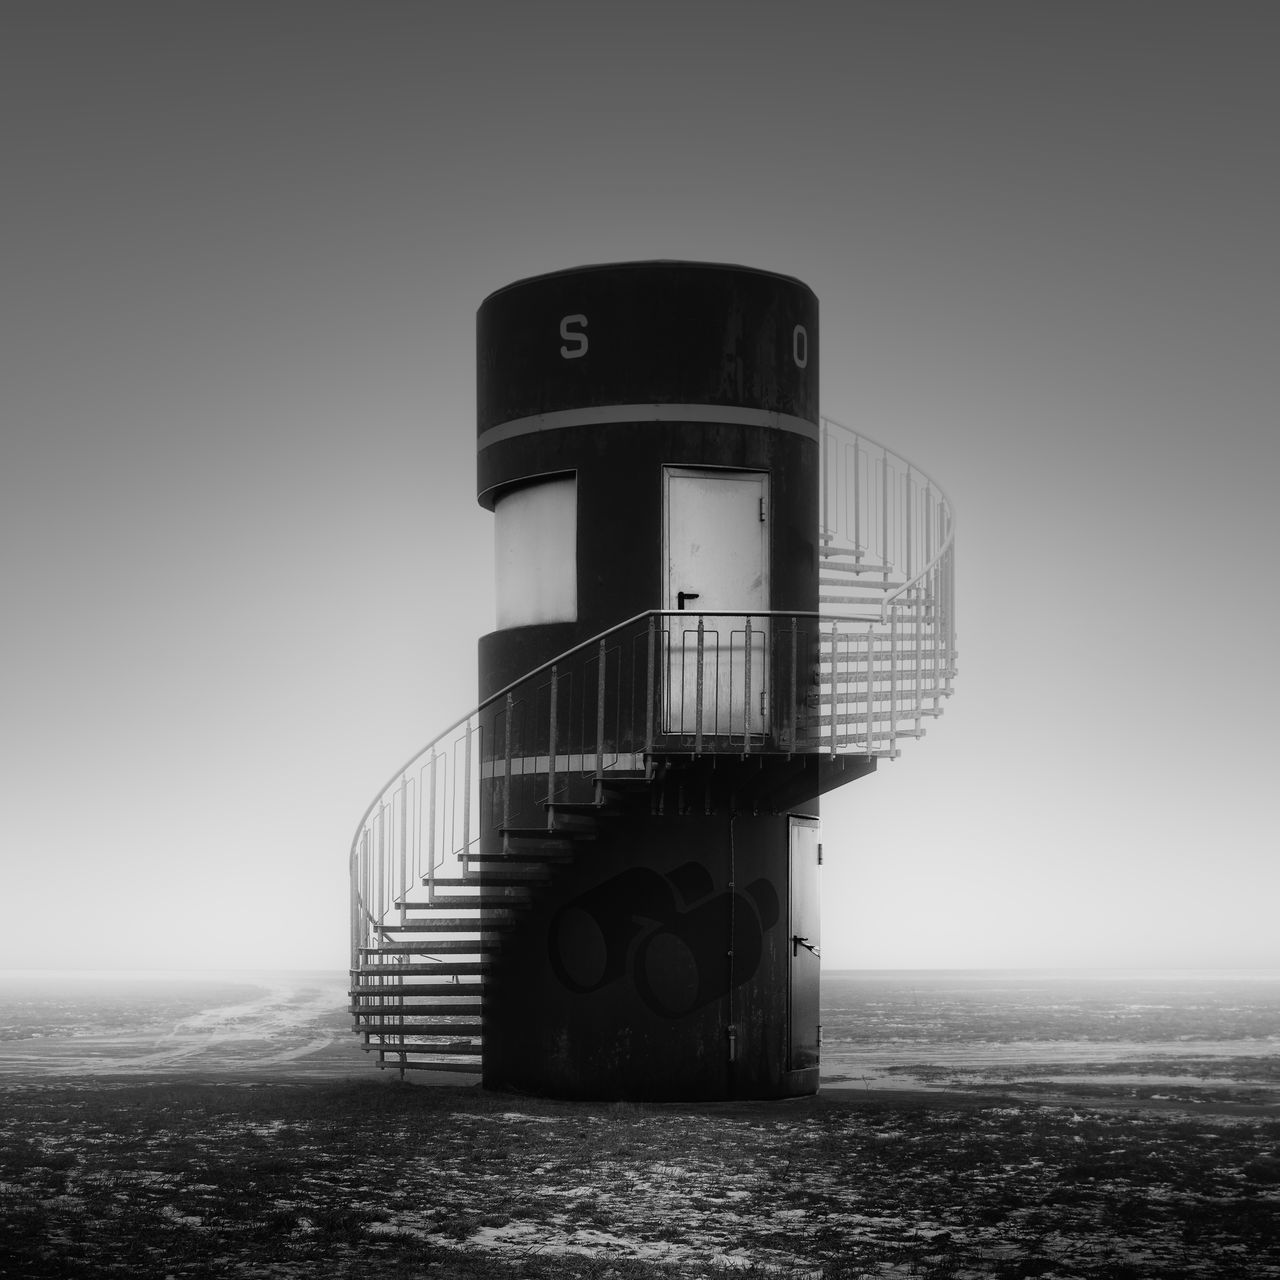 Lookout tower at Tempelhofer Field Berlin Architecture Beach Berlin Black And White Built Structure City Copy Space Day Fineart Fineart_photobw Foggy Day Germany Long Exposure Lookout Tower Misty Morning Nature No People Outdoors Philipp Dase Sea Sky Stairs Tempelhofer Feld Winter